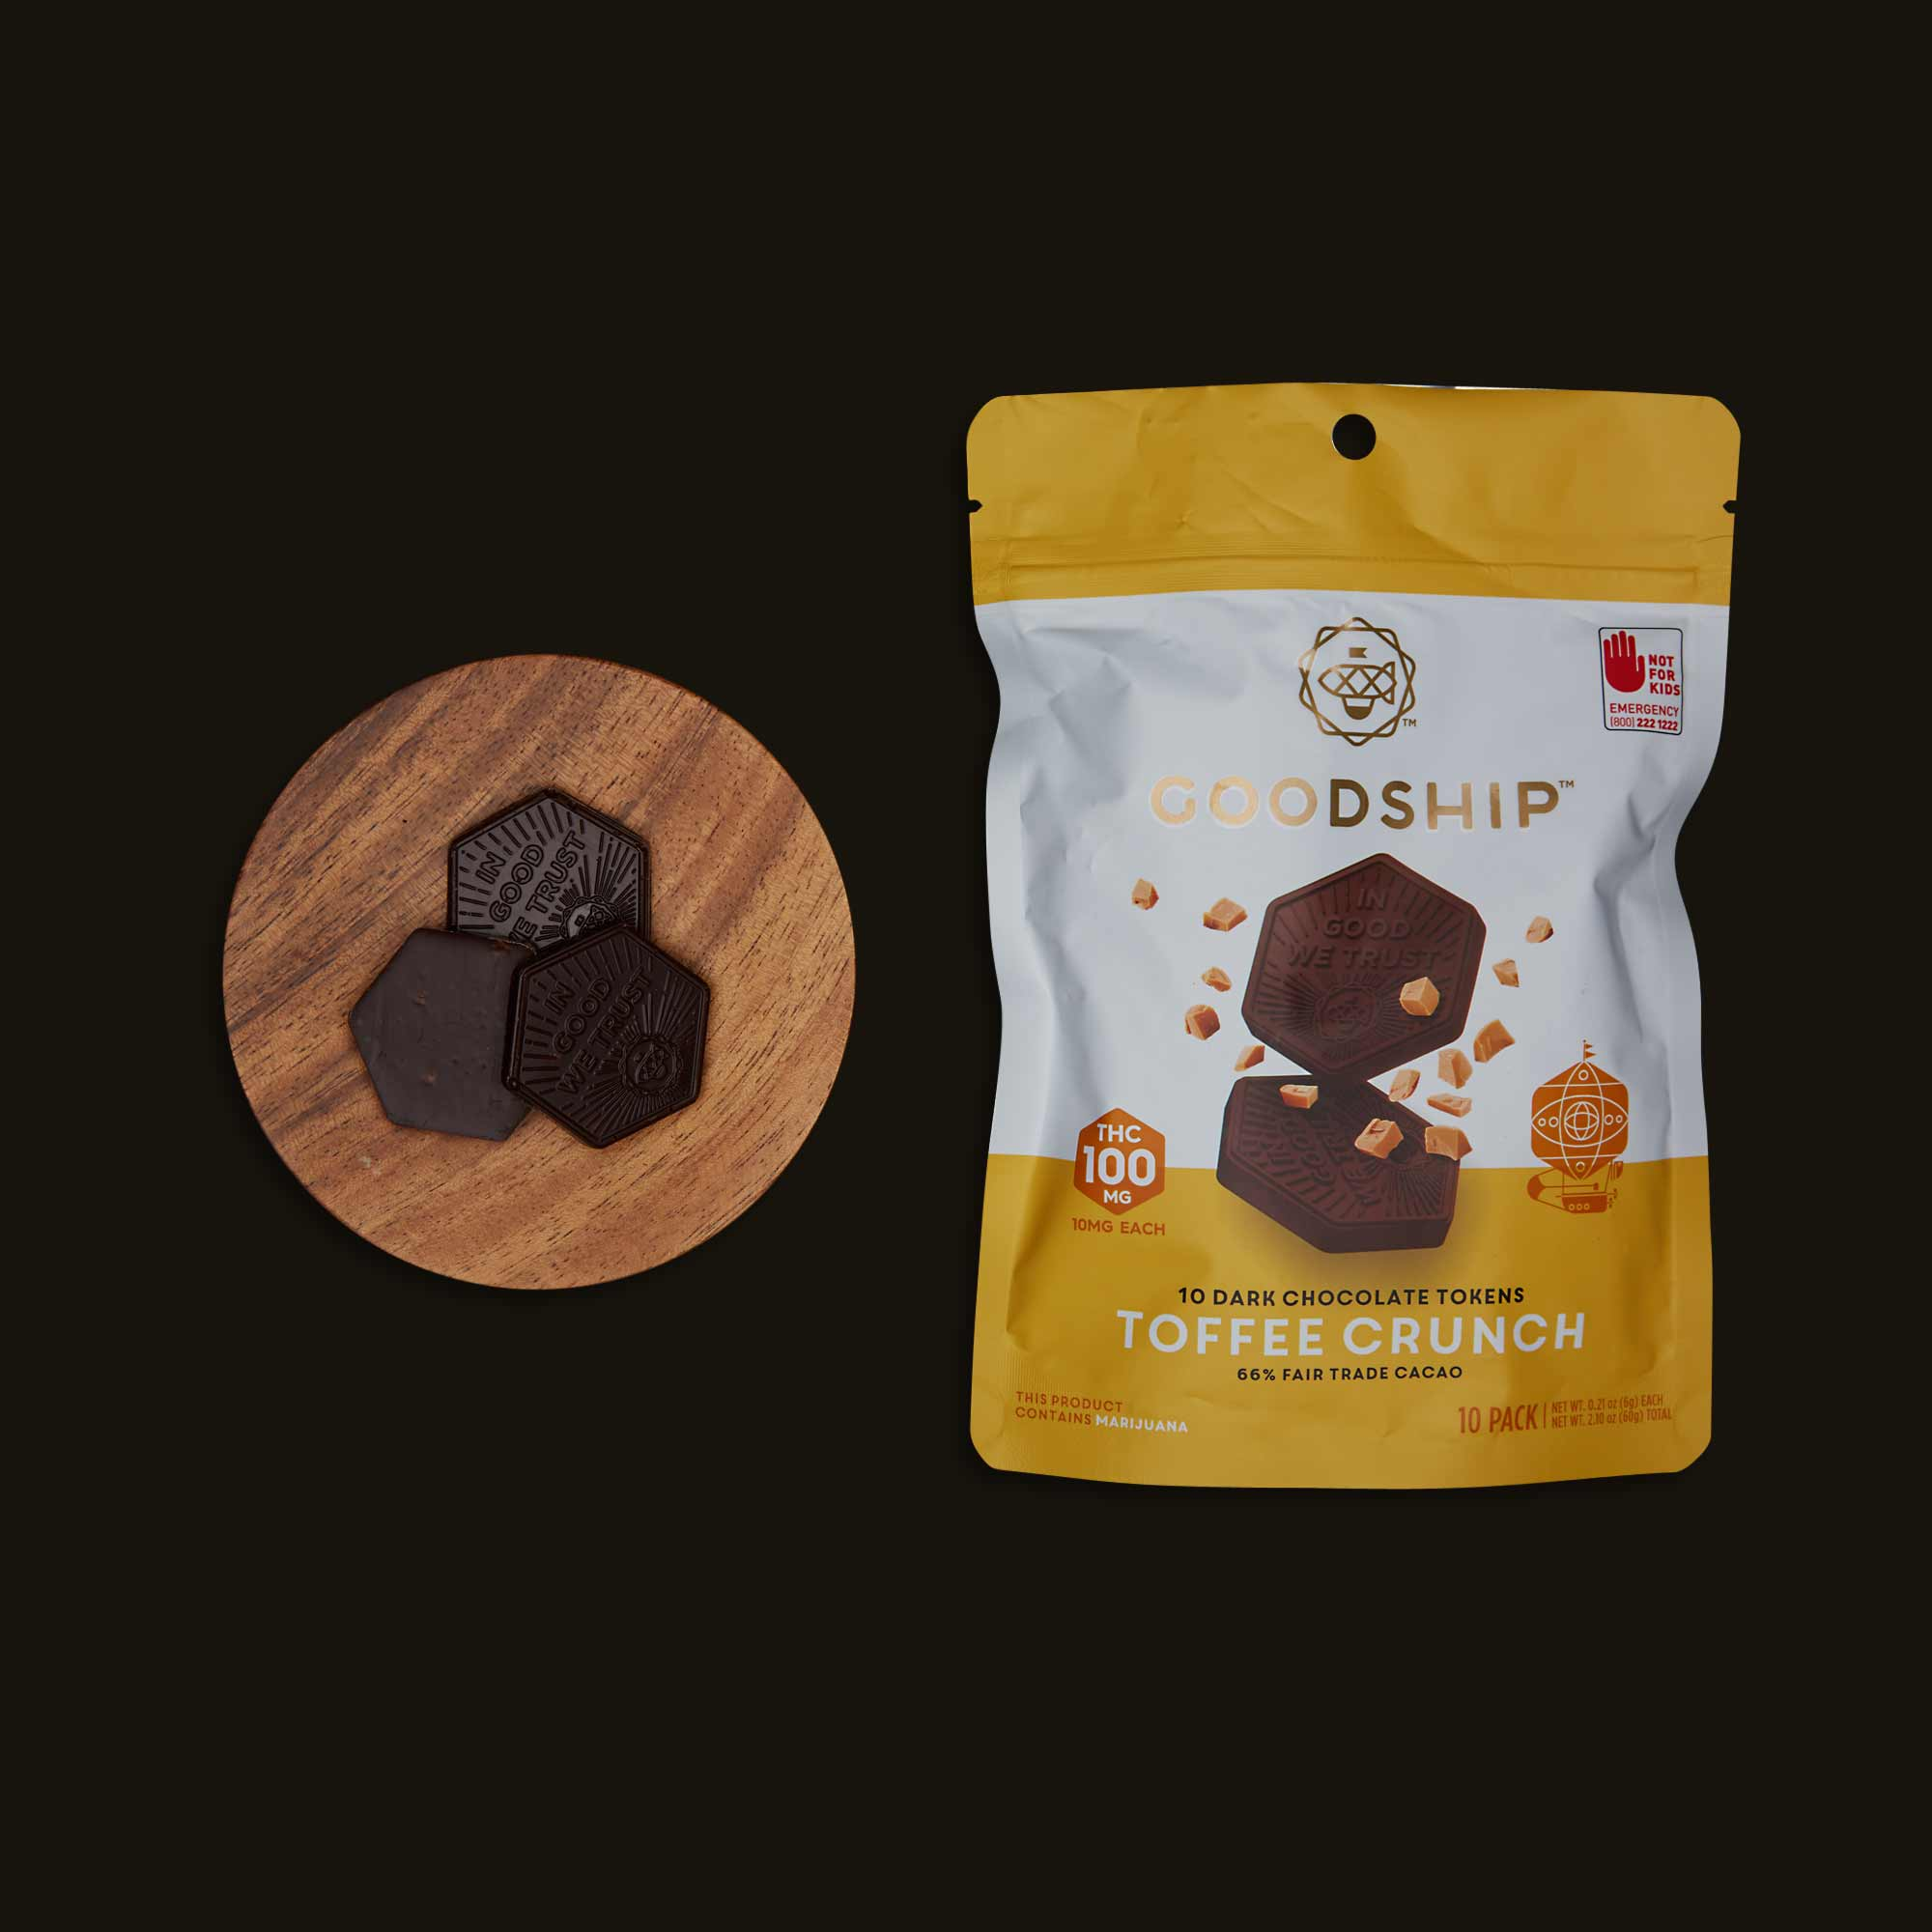 Goodship Toffee Crunch Chocolate Tokens